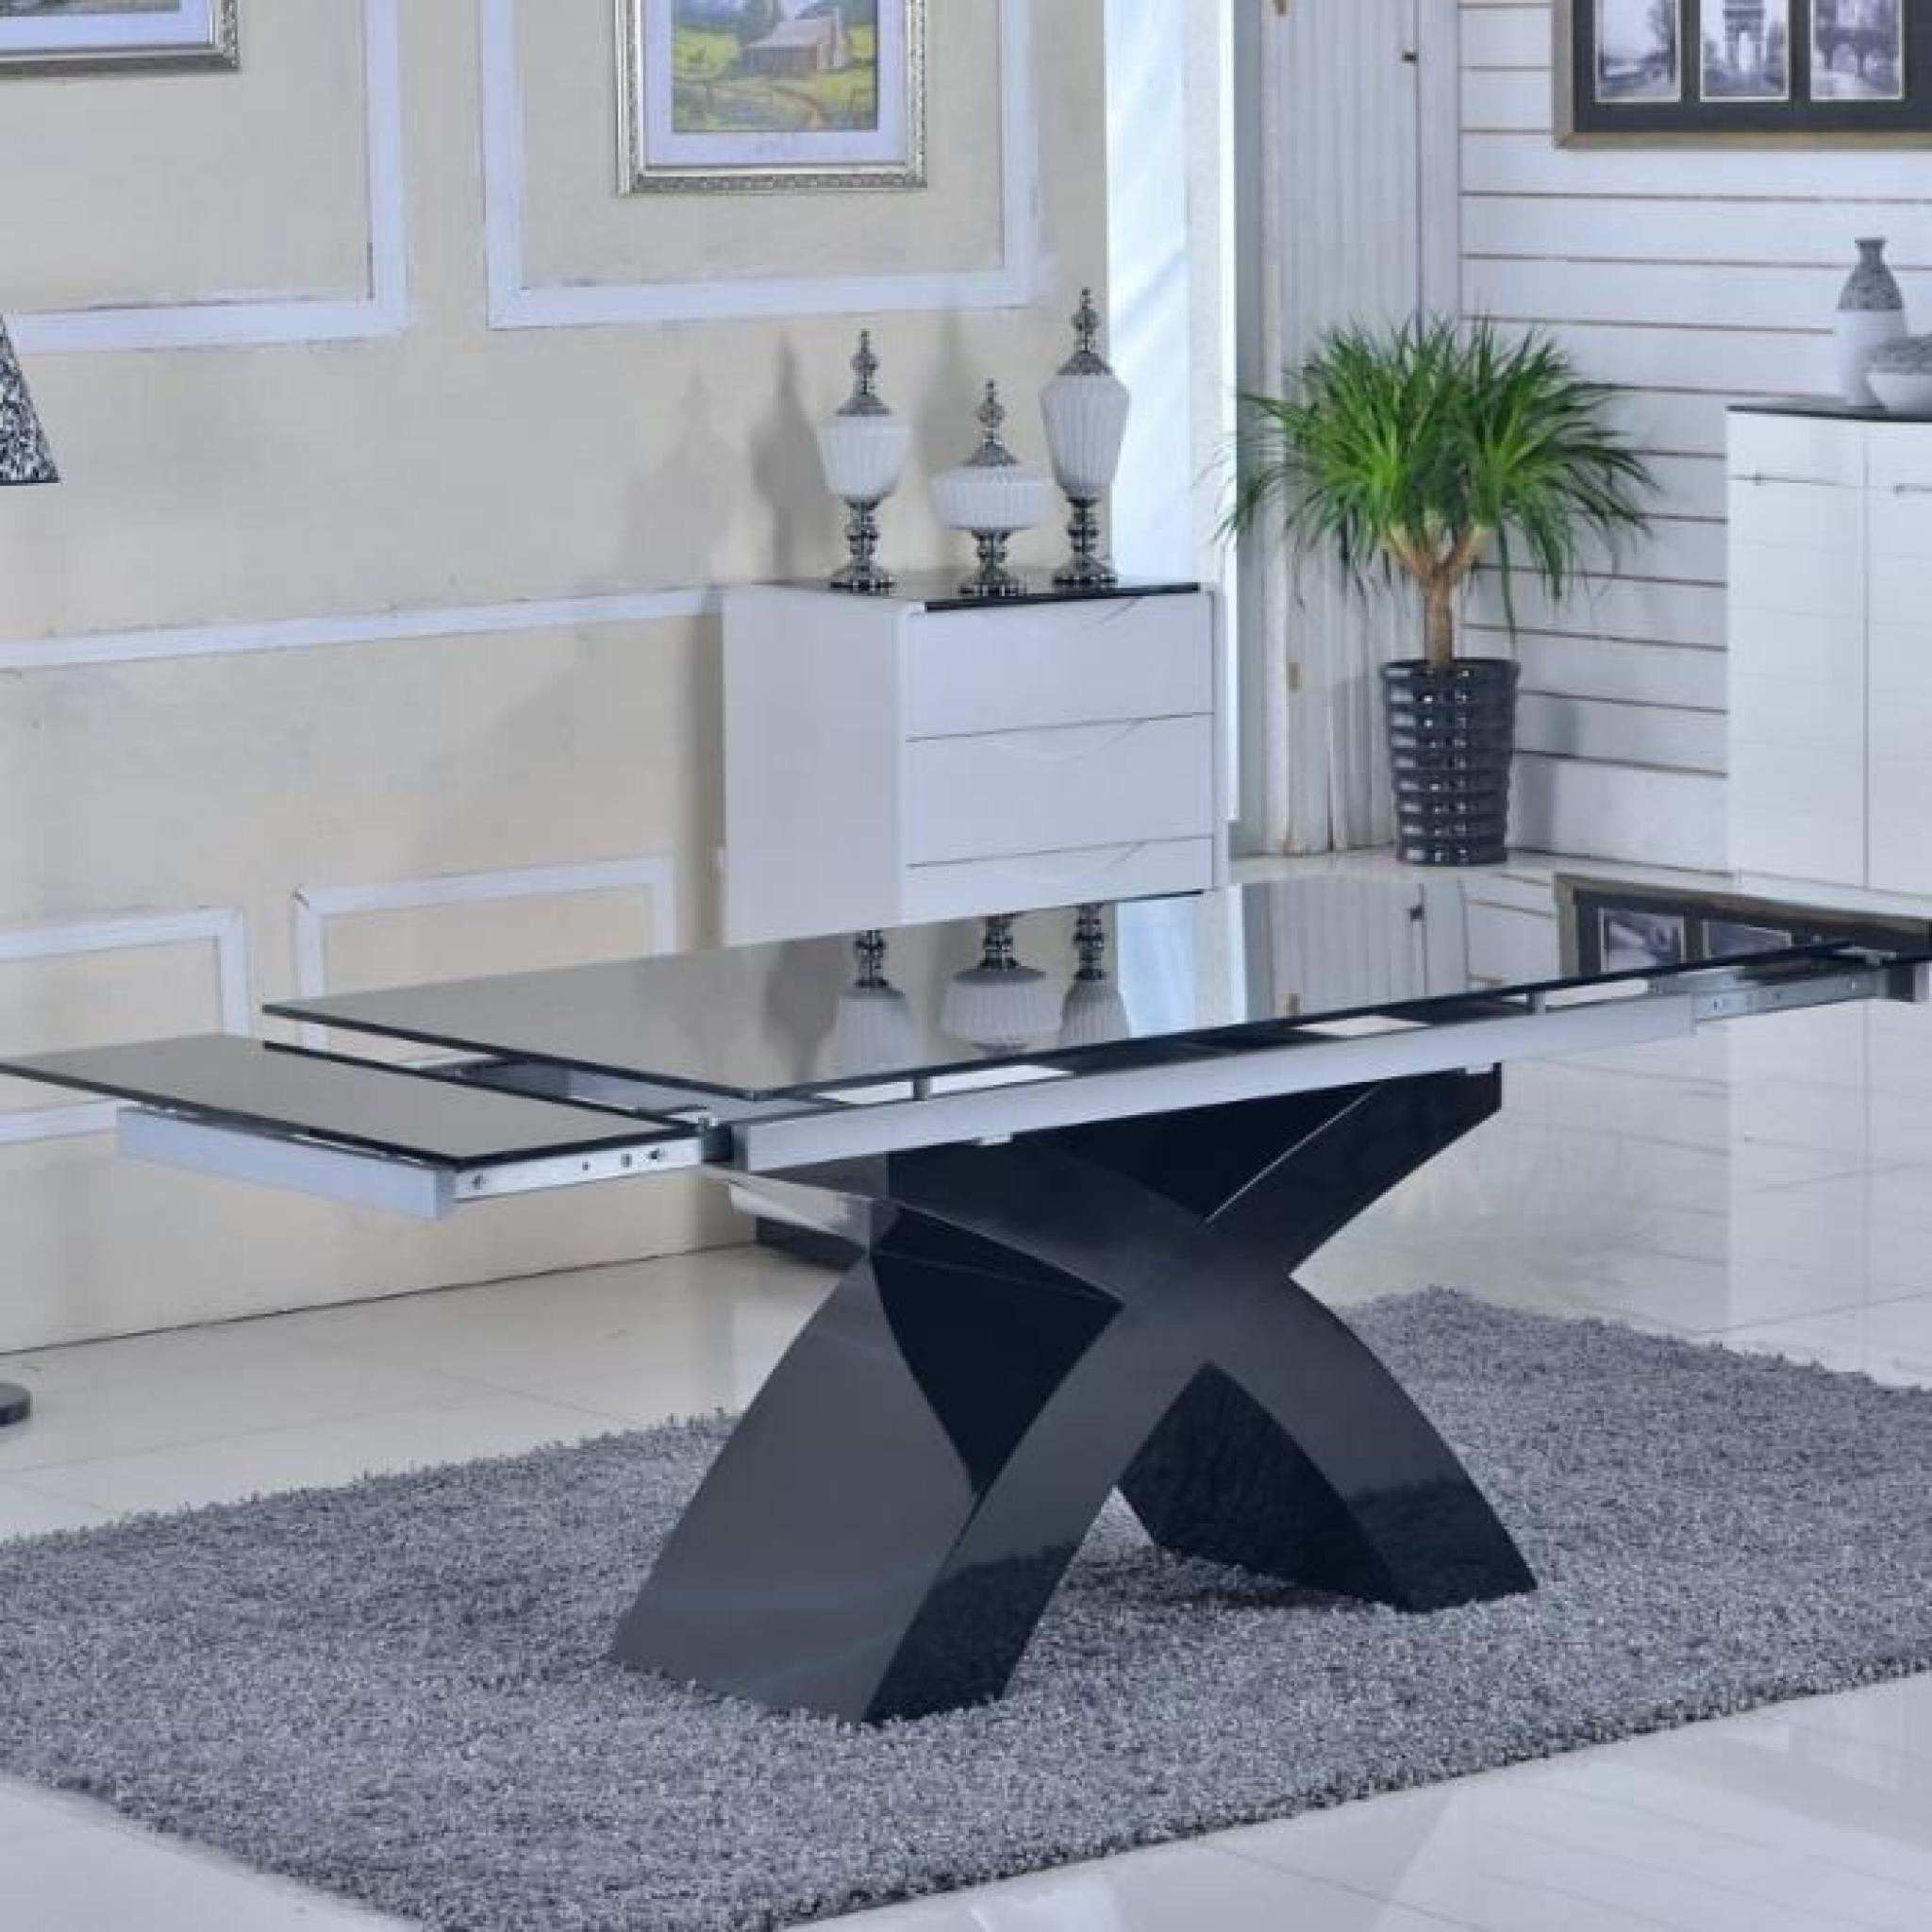 Table en verre noir rallonges extensible elix achat for Table en verre extensible design